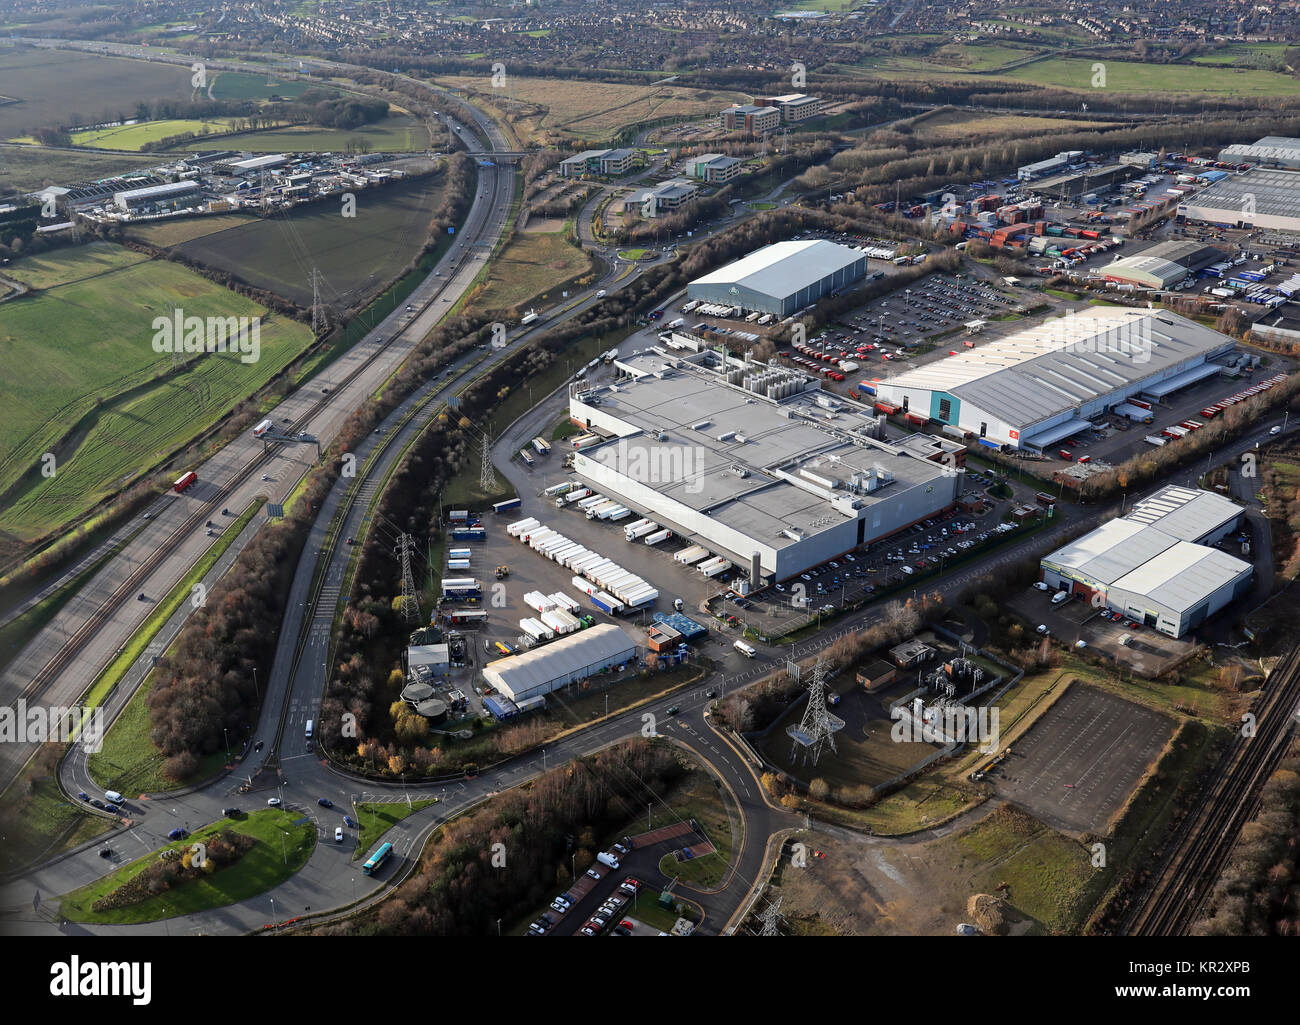 aerial view of Arla Foods factory & Offices, Leeds - Stock Image